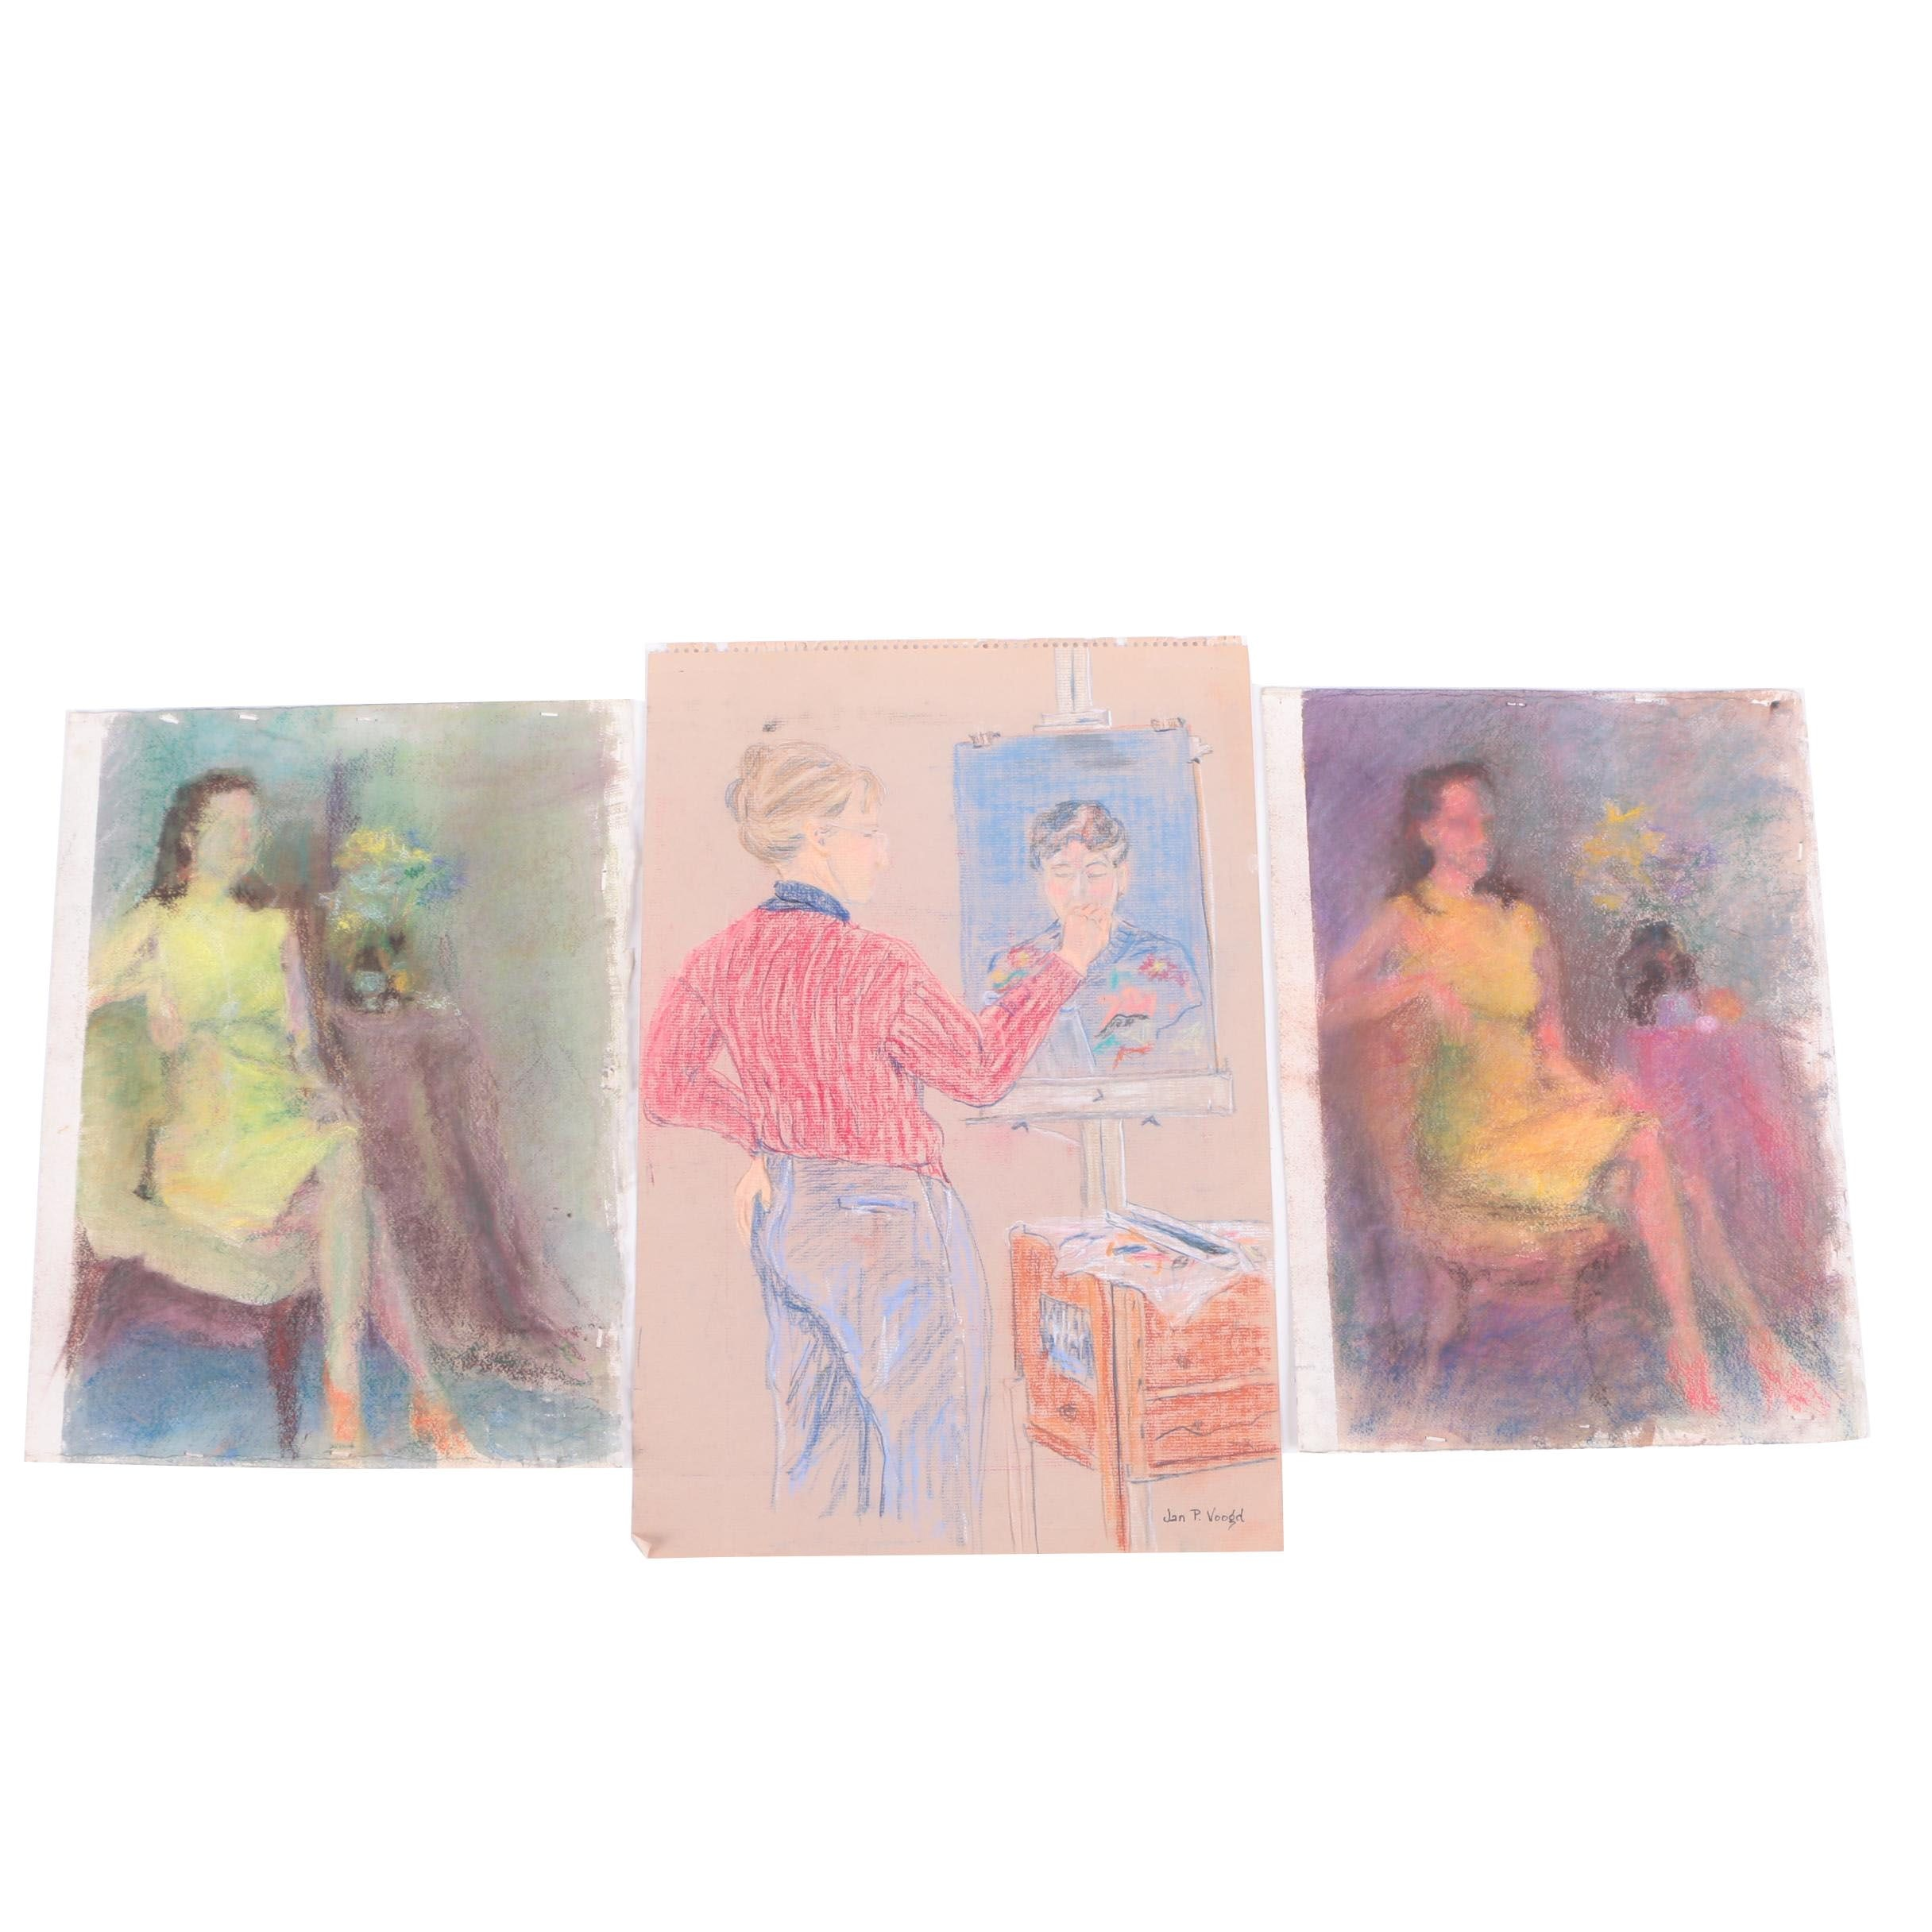 Pastel Drawings of Women Featuring Jan P. Voogd Drawing of an Artist